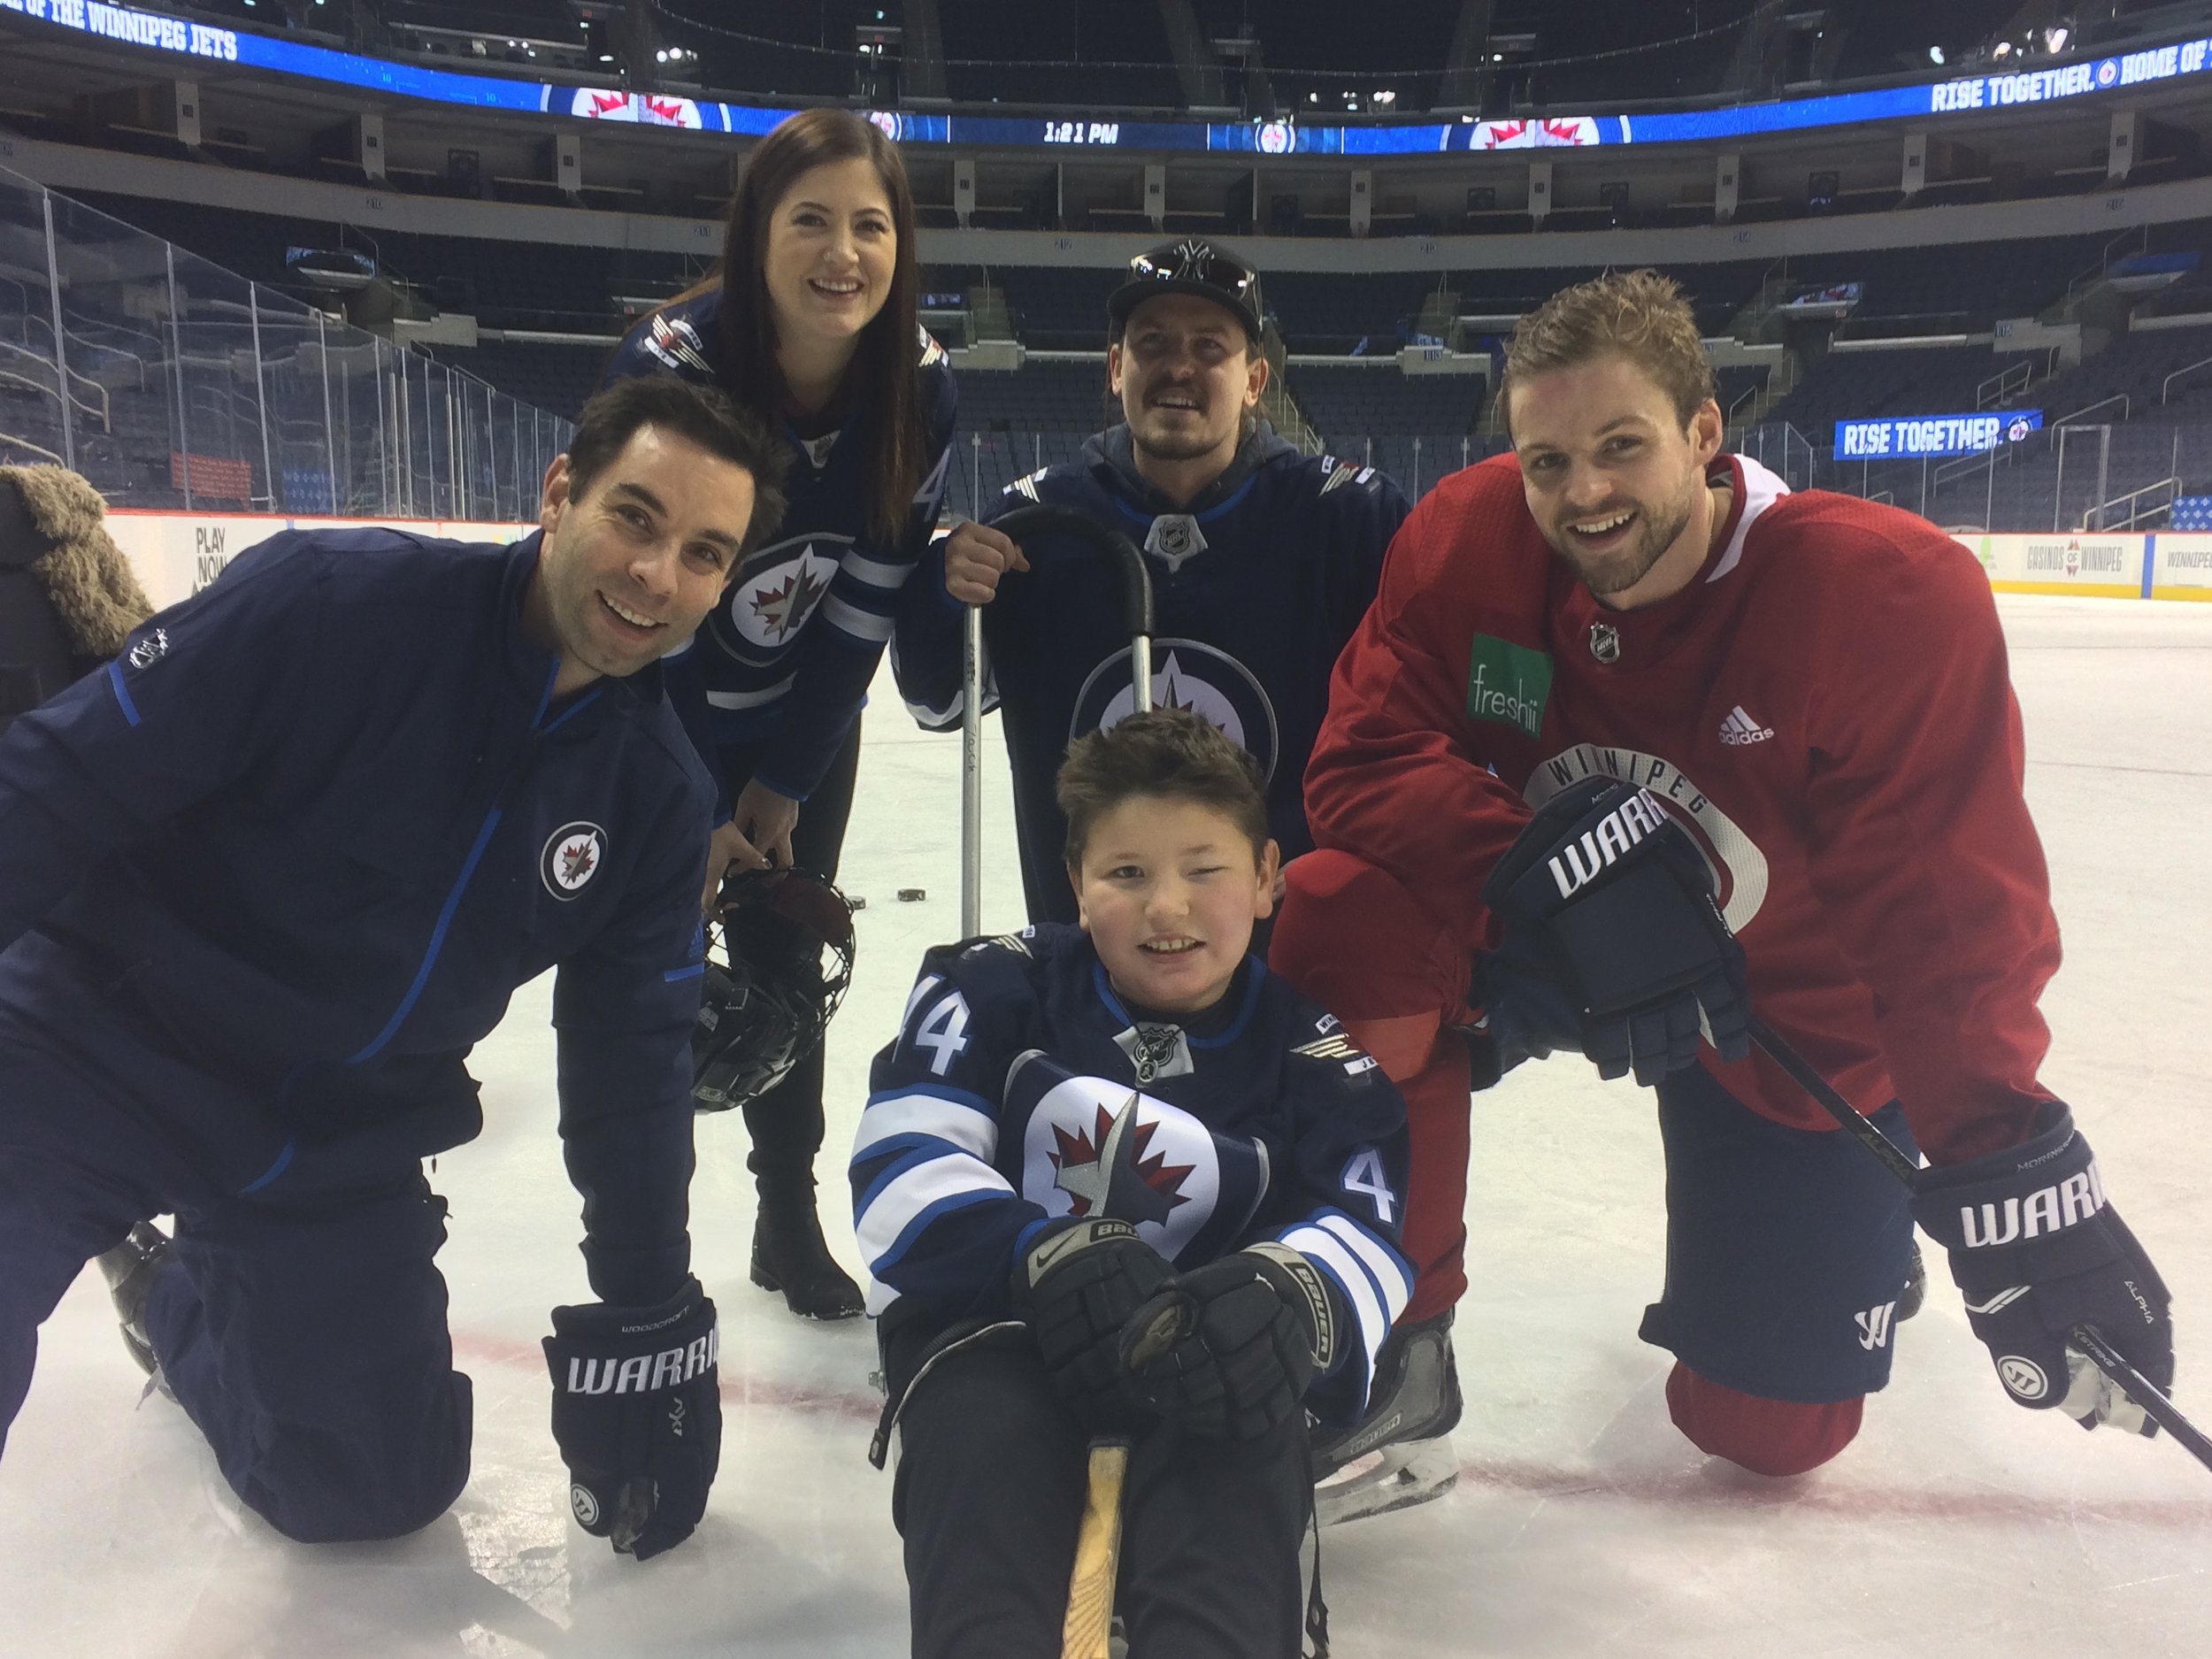 Pictured: Dream Kid Zack was all smiles when he took to the ice with his hockey hero, Josh Morrissey